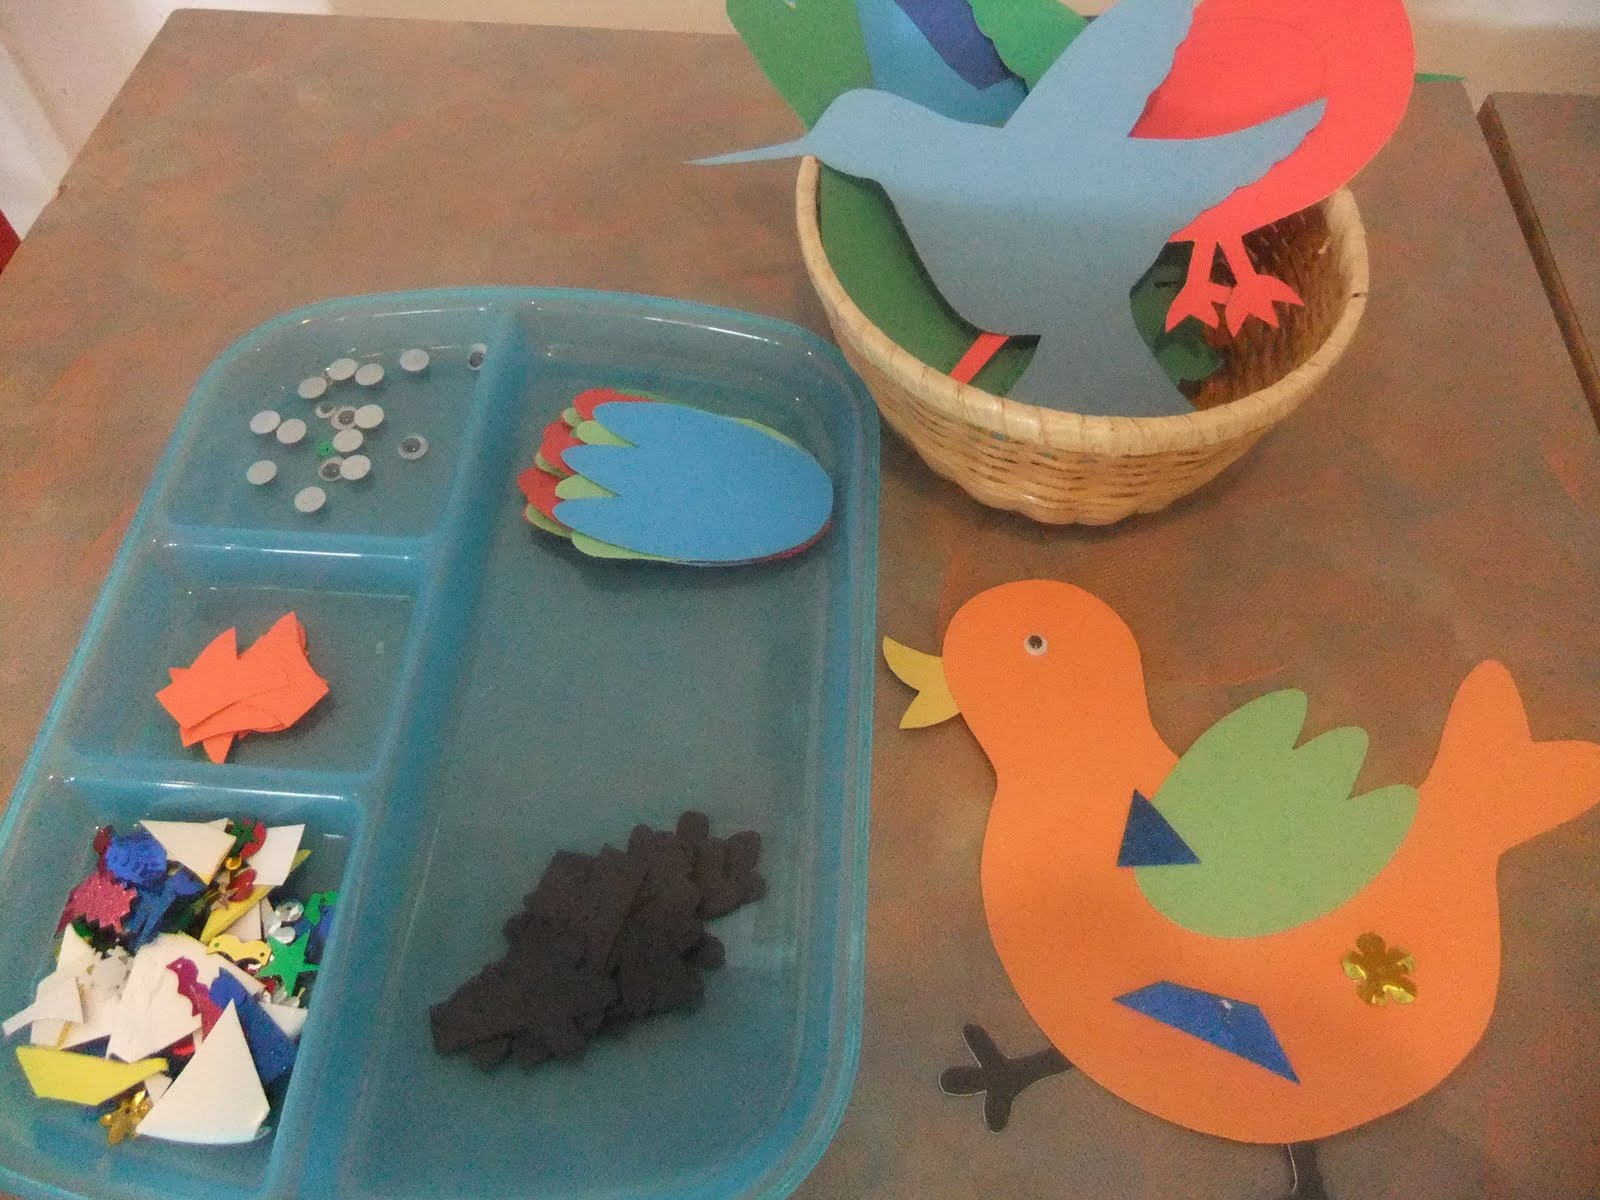 NAMC montessori preschool classroom activities learning about birds gluing craft